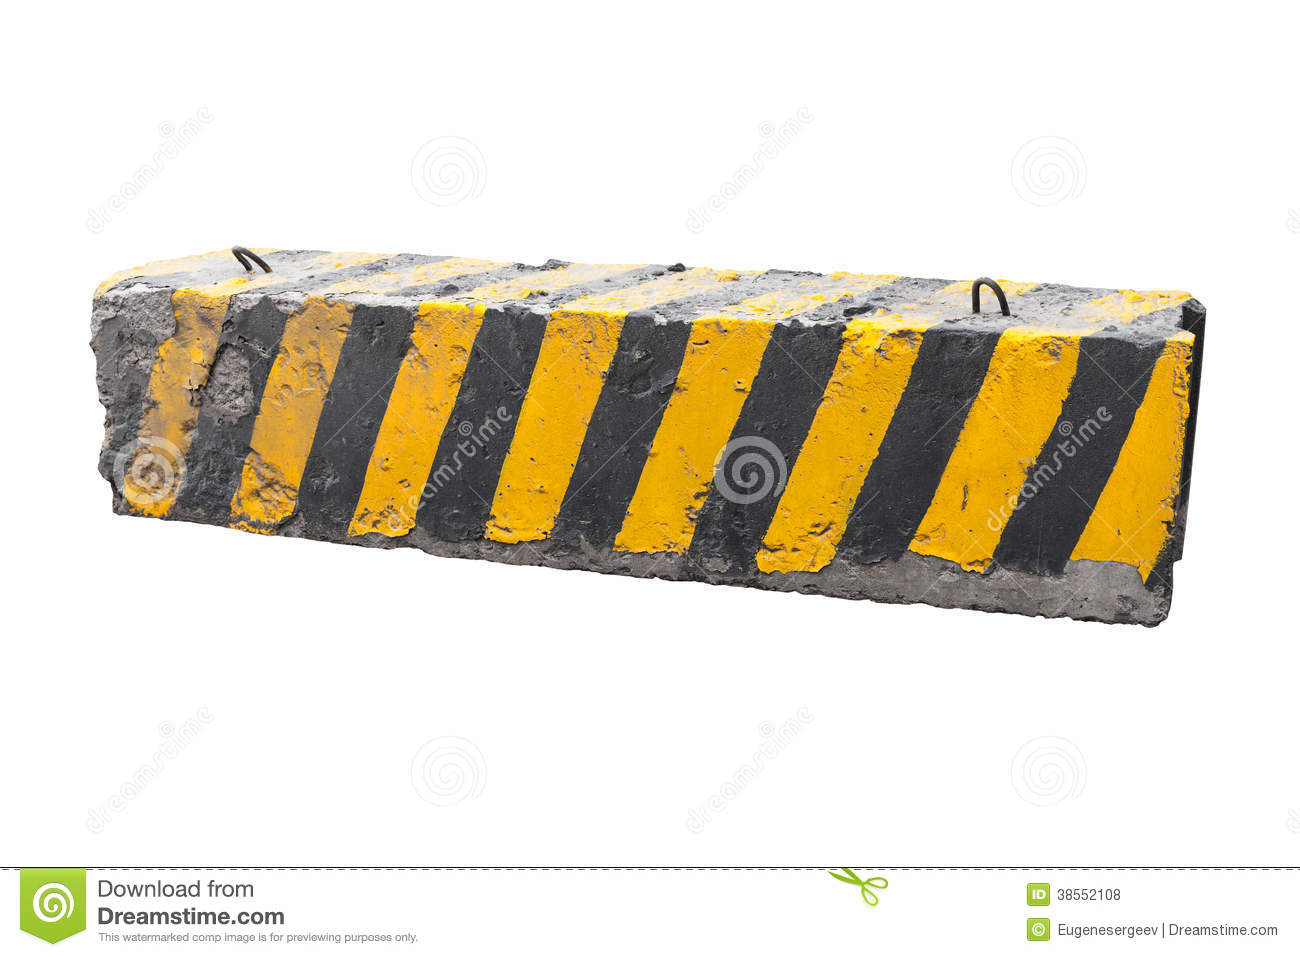 Striped black and yellow concrete road barrier stock photo